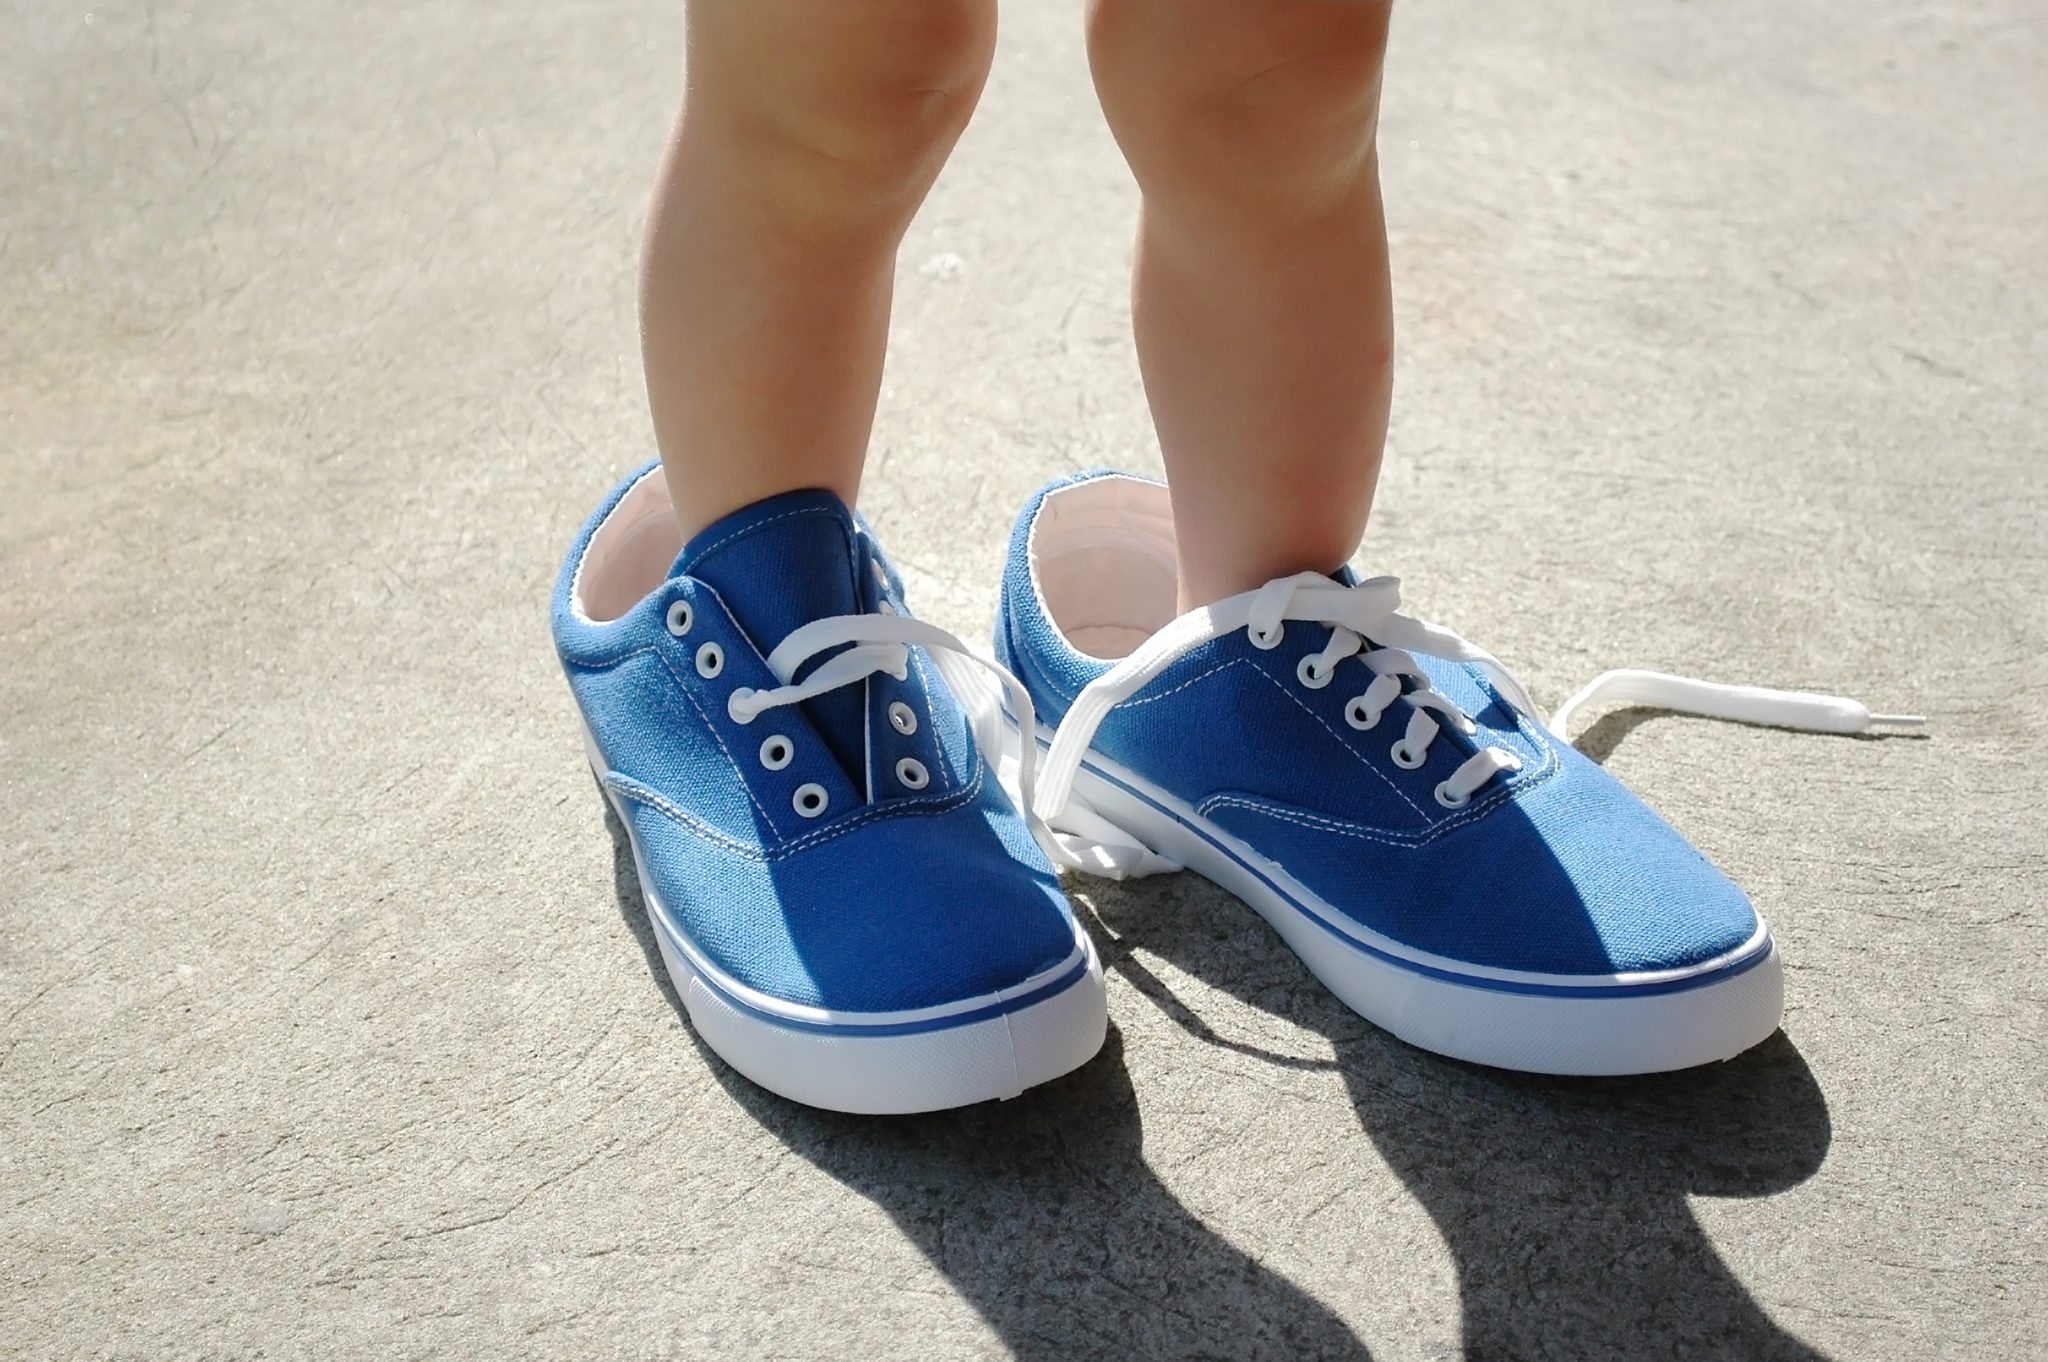 Baby foot stepping into adult size blue shoes